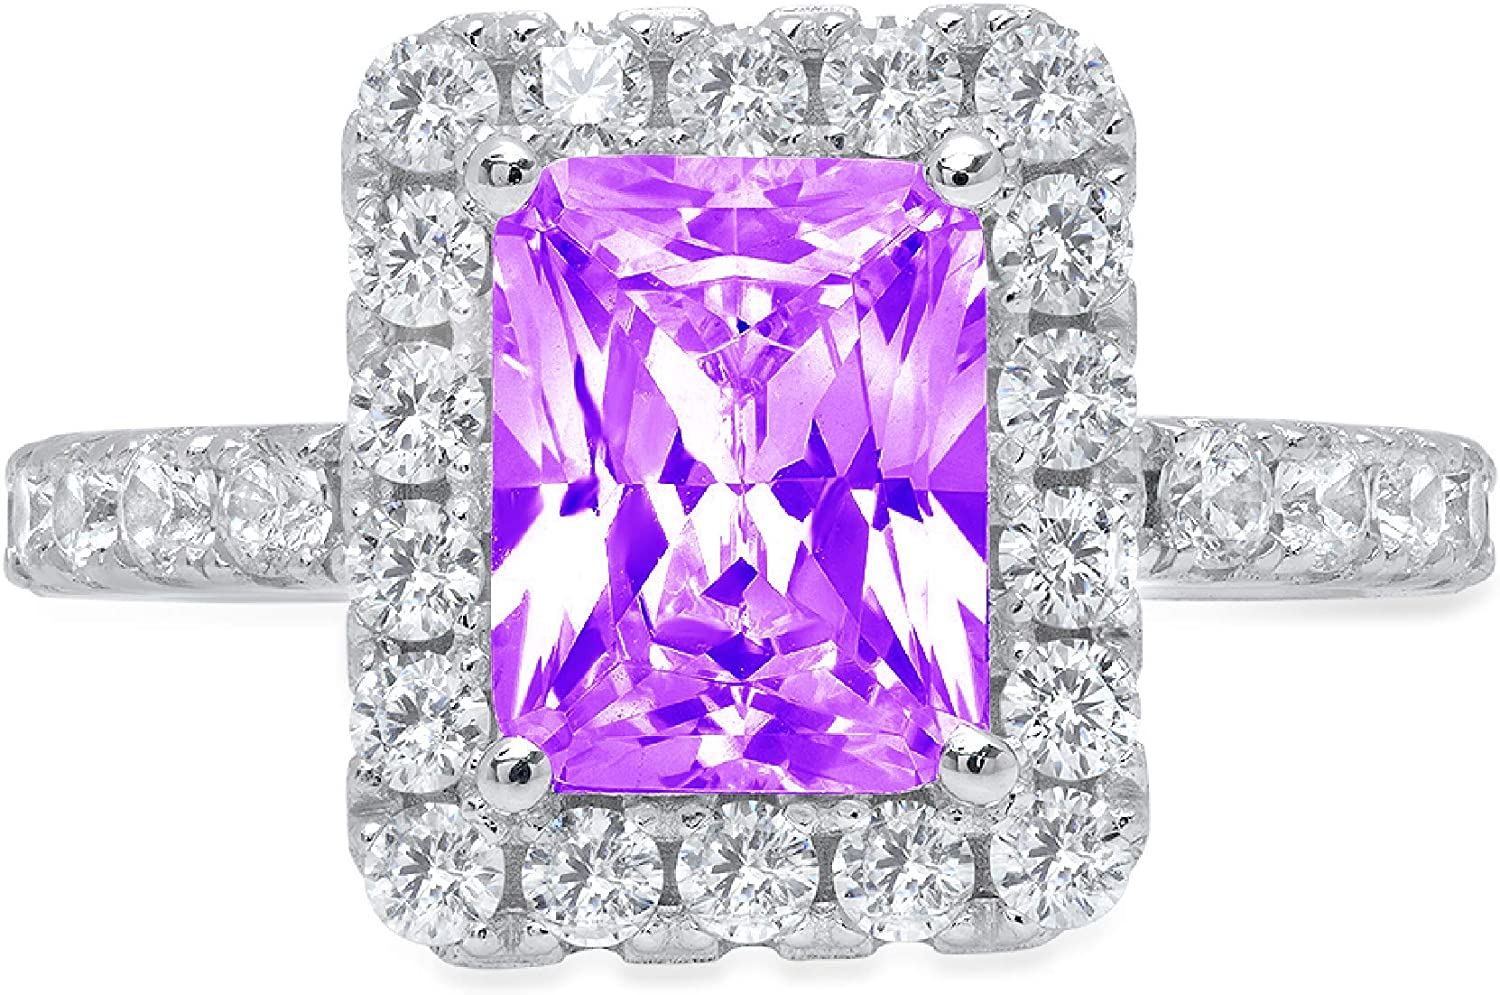 3.84ct Brilliant Emerald Cut Solitaire with Accent Halo Natural Purple Amethyst Gem Stone Ideal VVS1 Engagement Promise Statement Anniversary Bridal Wedding ring 14k White Gold